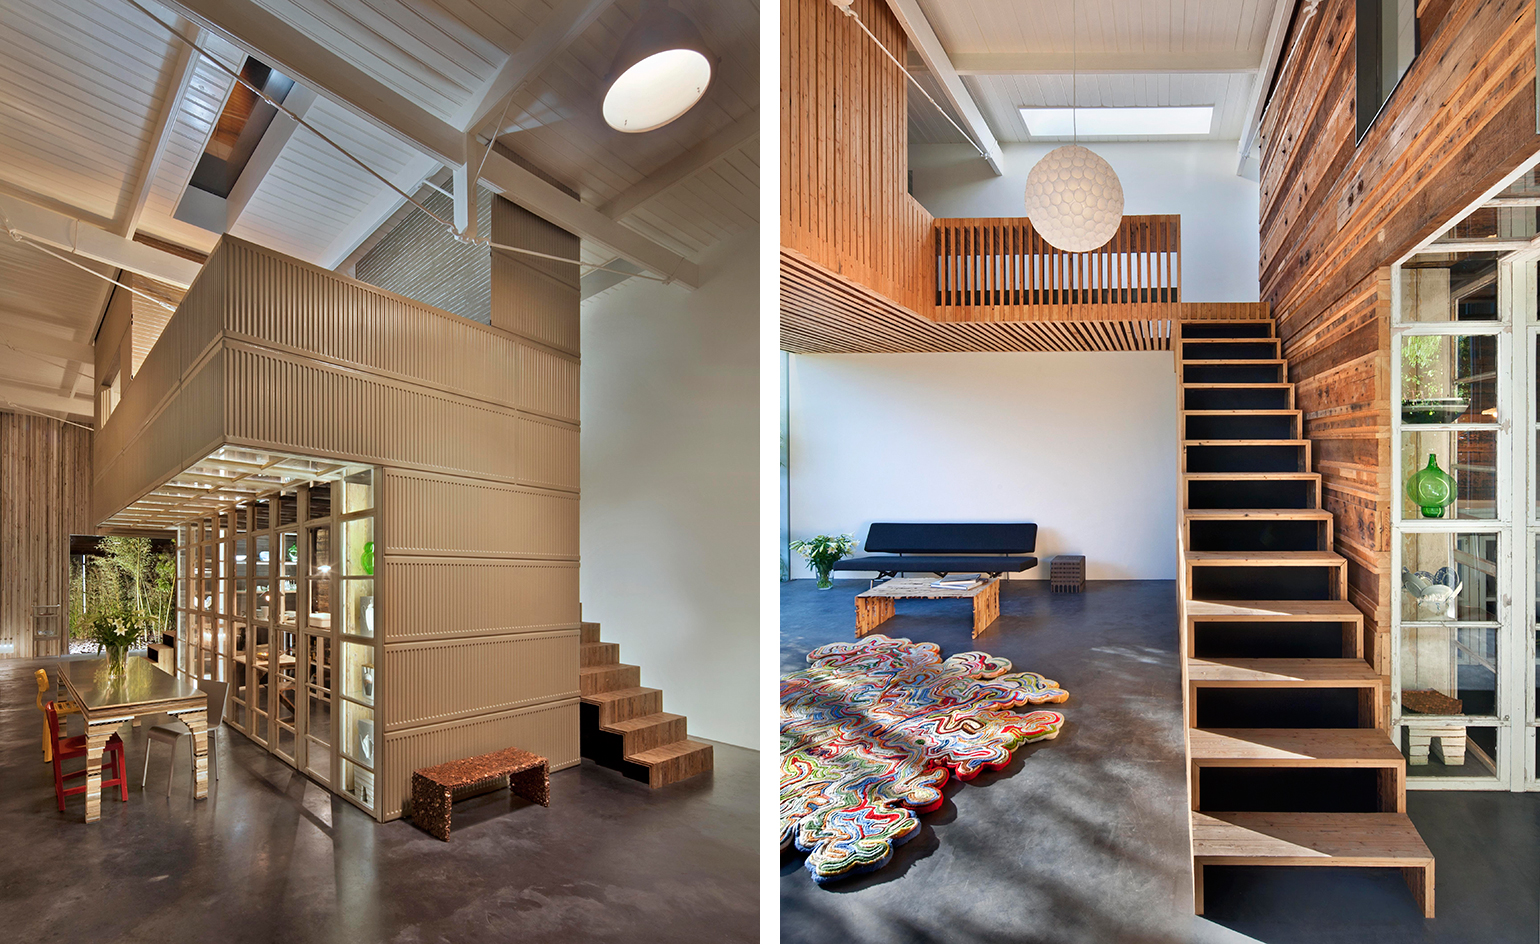 The interiors are really sculptural ones, which gives special look to the decor